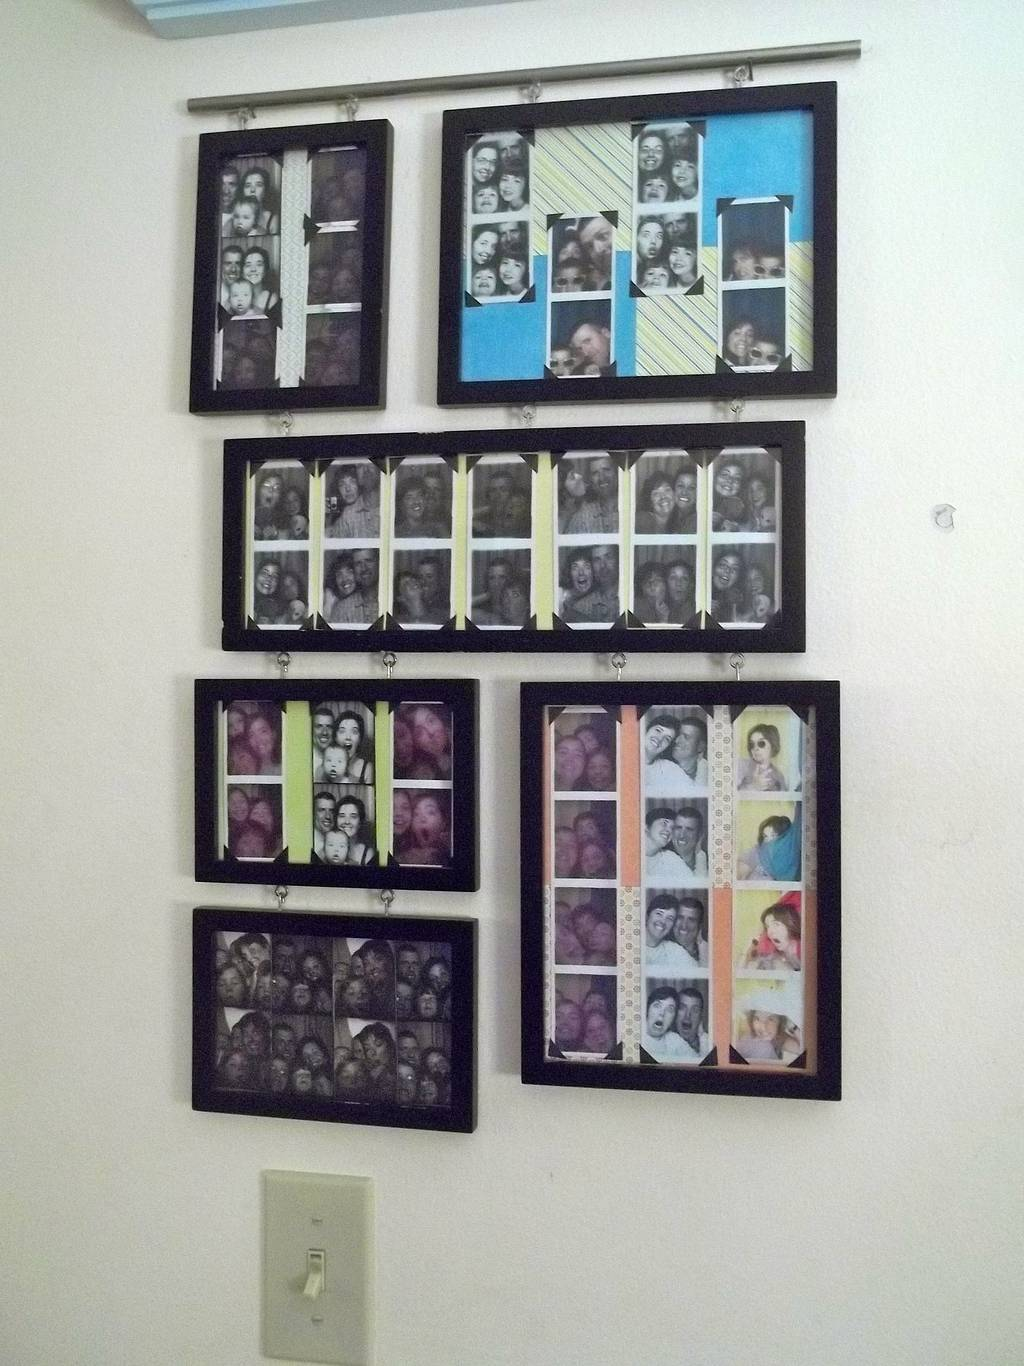 How to Display Vintage Photo Booth Photos